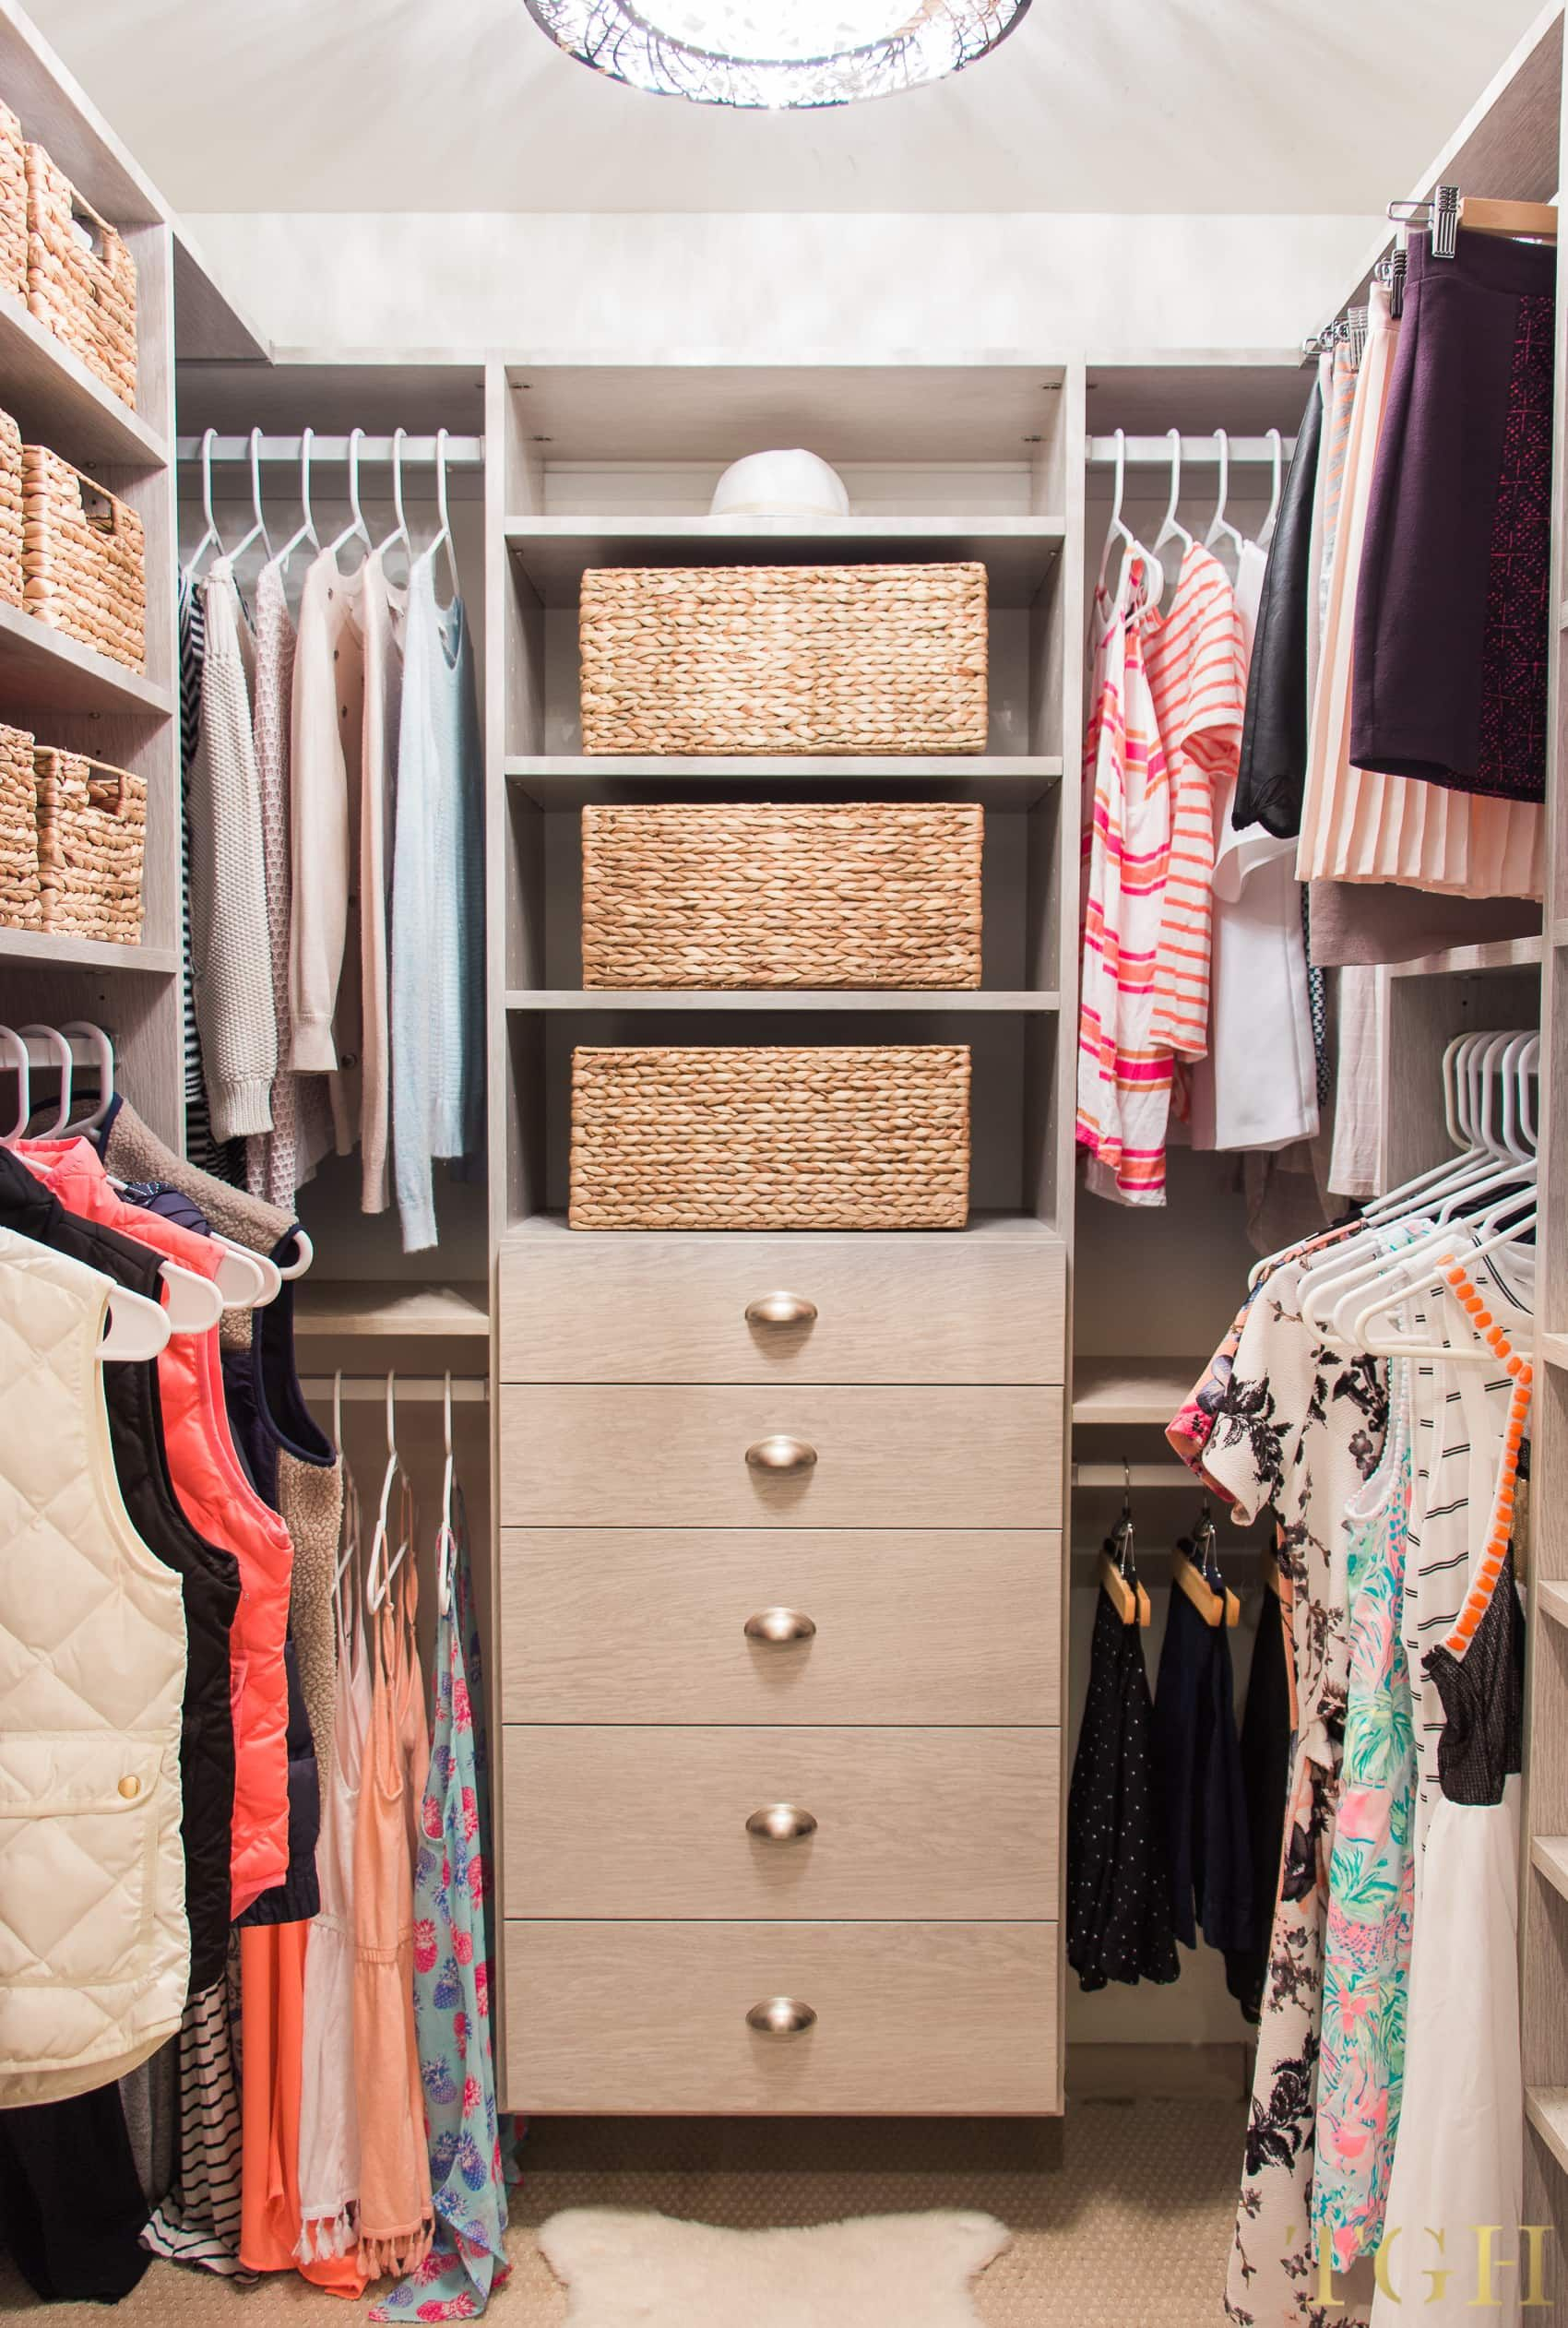 California Closets Review With Pricing The Greenspring Home Closet Small Bedroom California Closets Bedroom Organization Closet